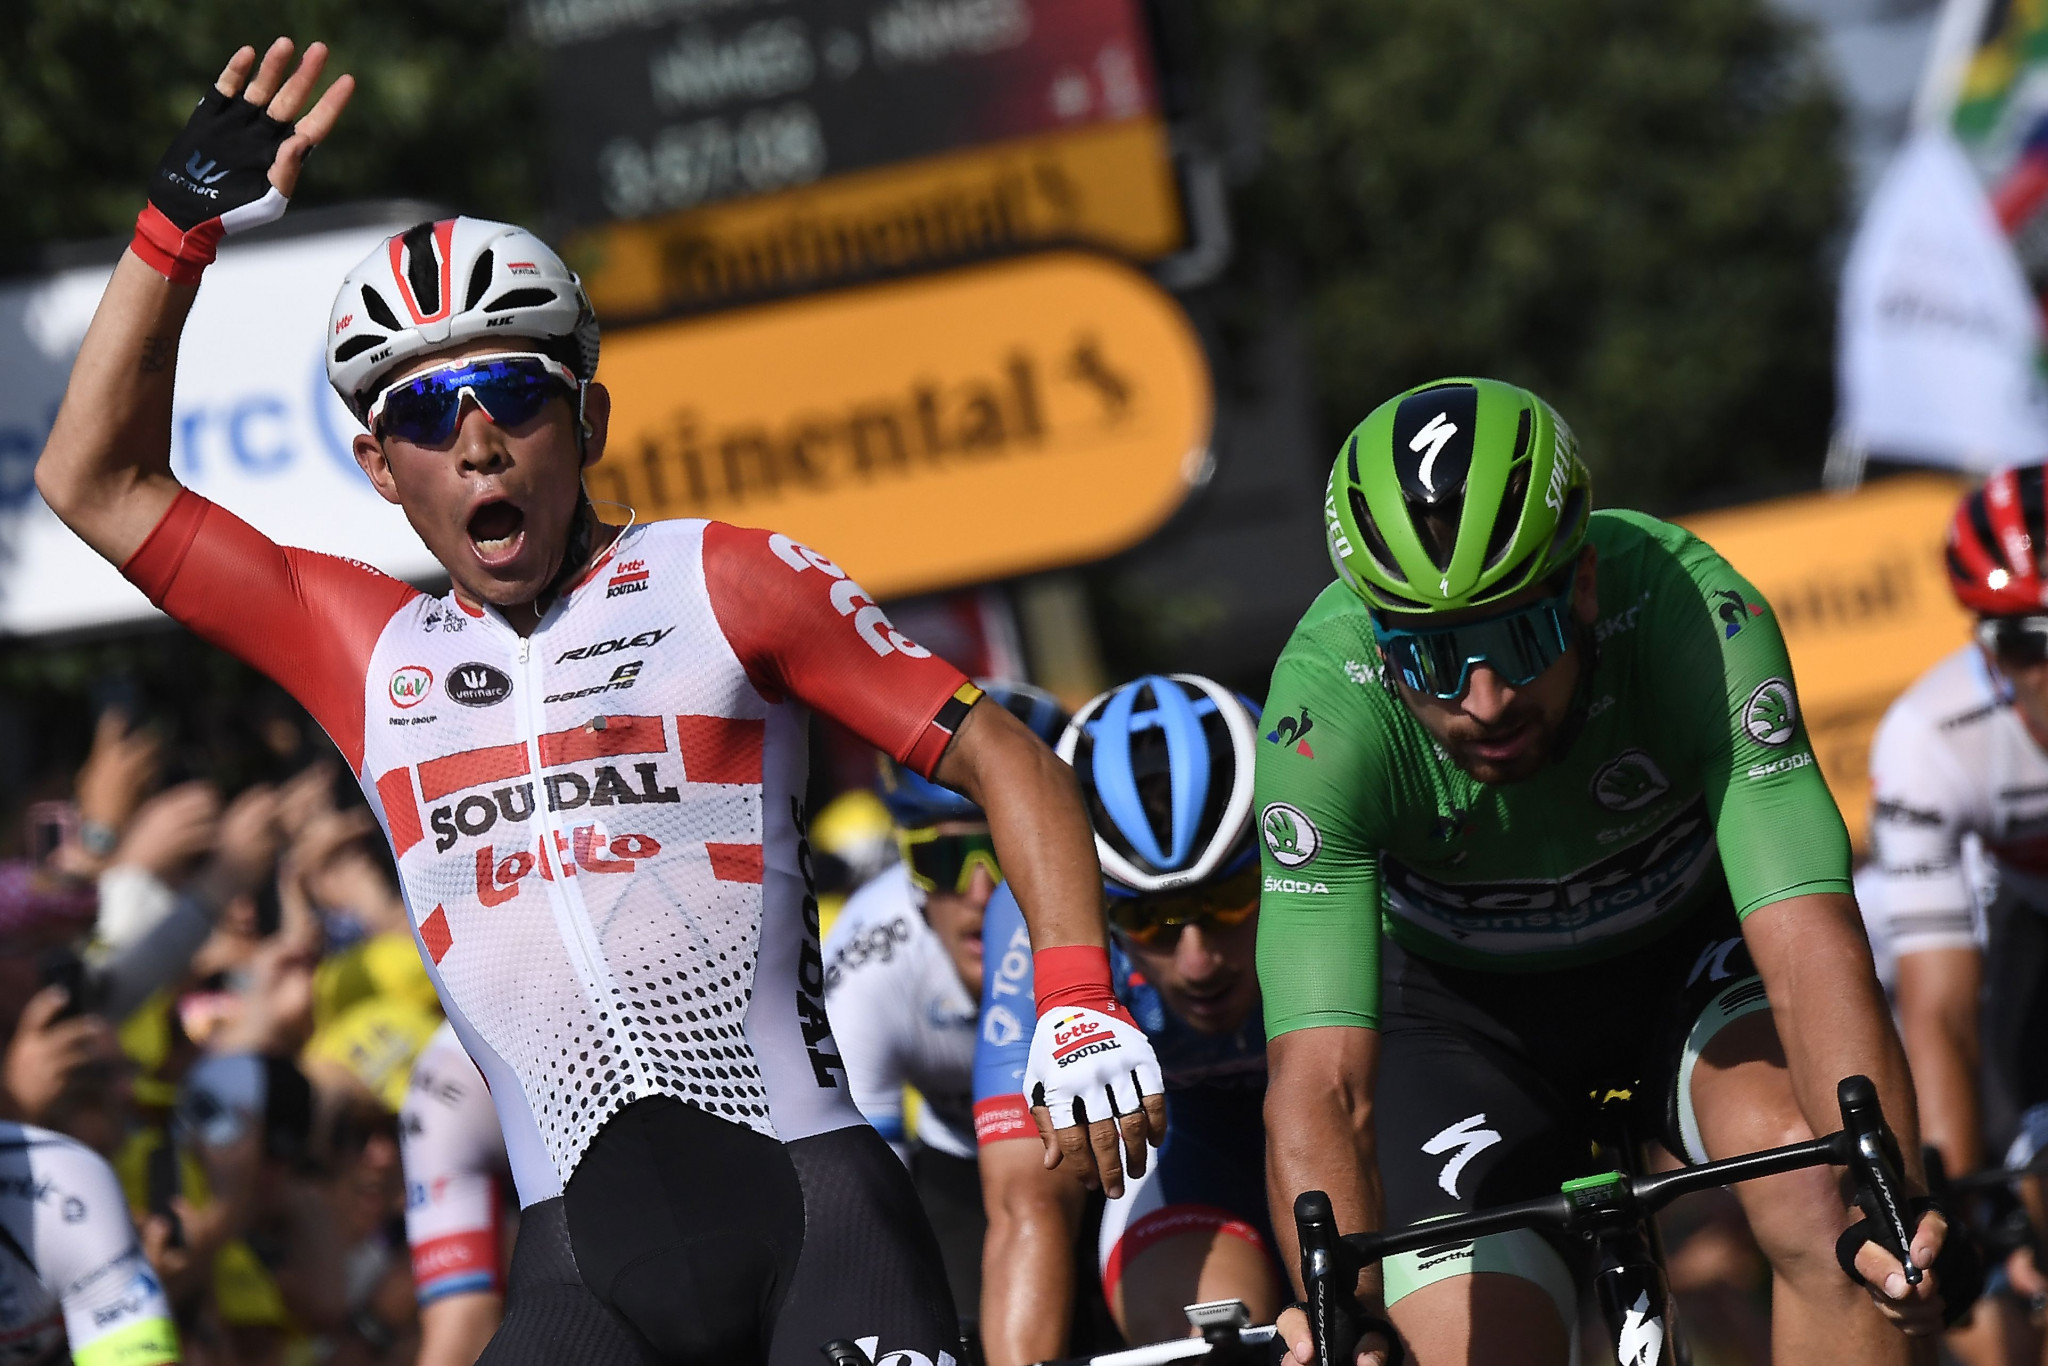 Australian Caleb Ewan claimed his second stage victory at this year's Tour de France ©Getty Images